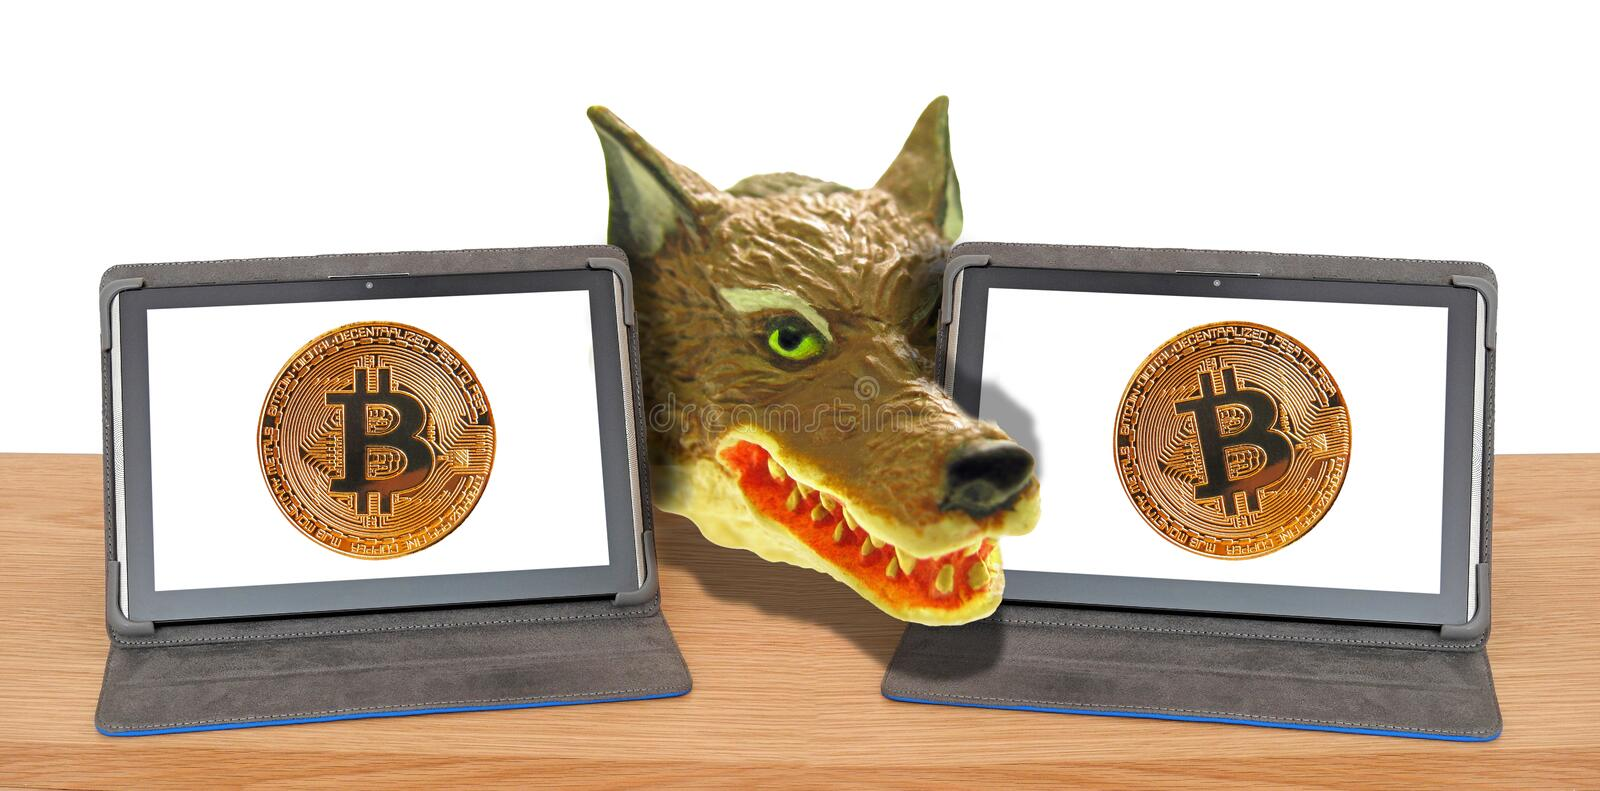 Online internet fraudster computer hack hacking malware trojan ransomware scam hijack. Concept photo of wolf head hiding between two computer tablets bitcoin vector illustration